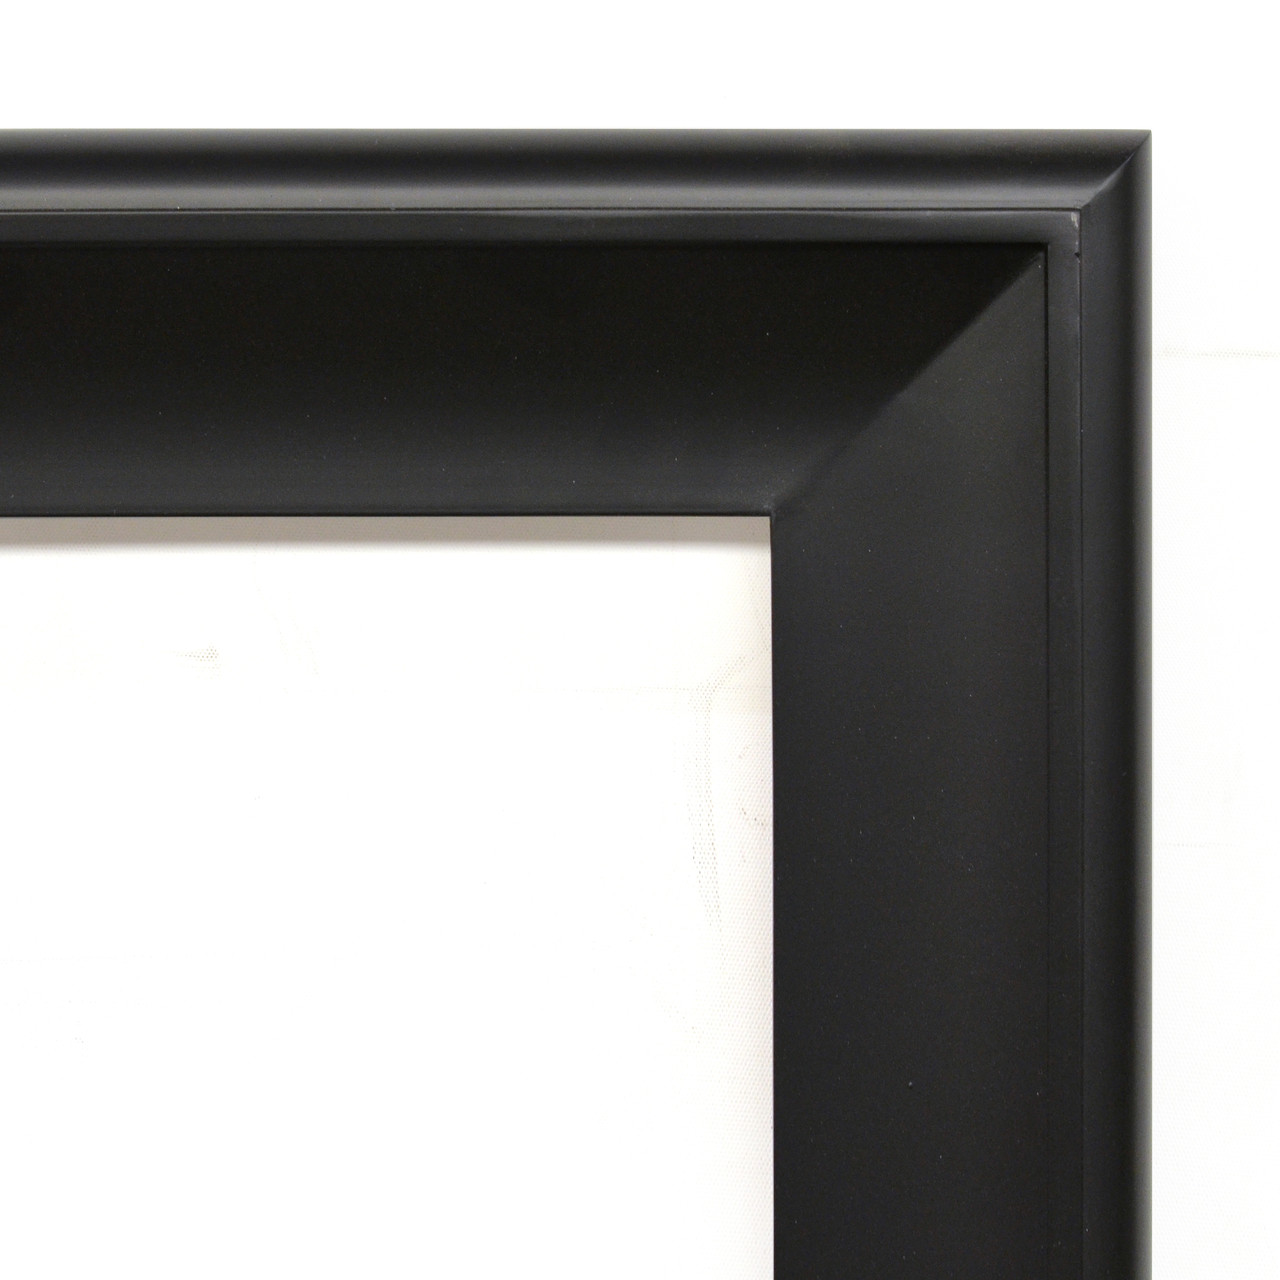 Foto 30x40 Silvery Woods Frame 30x40 Flat Black With Tarnished Silver